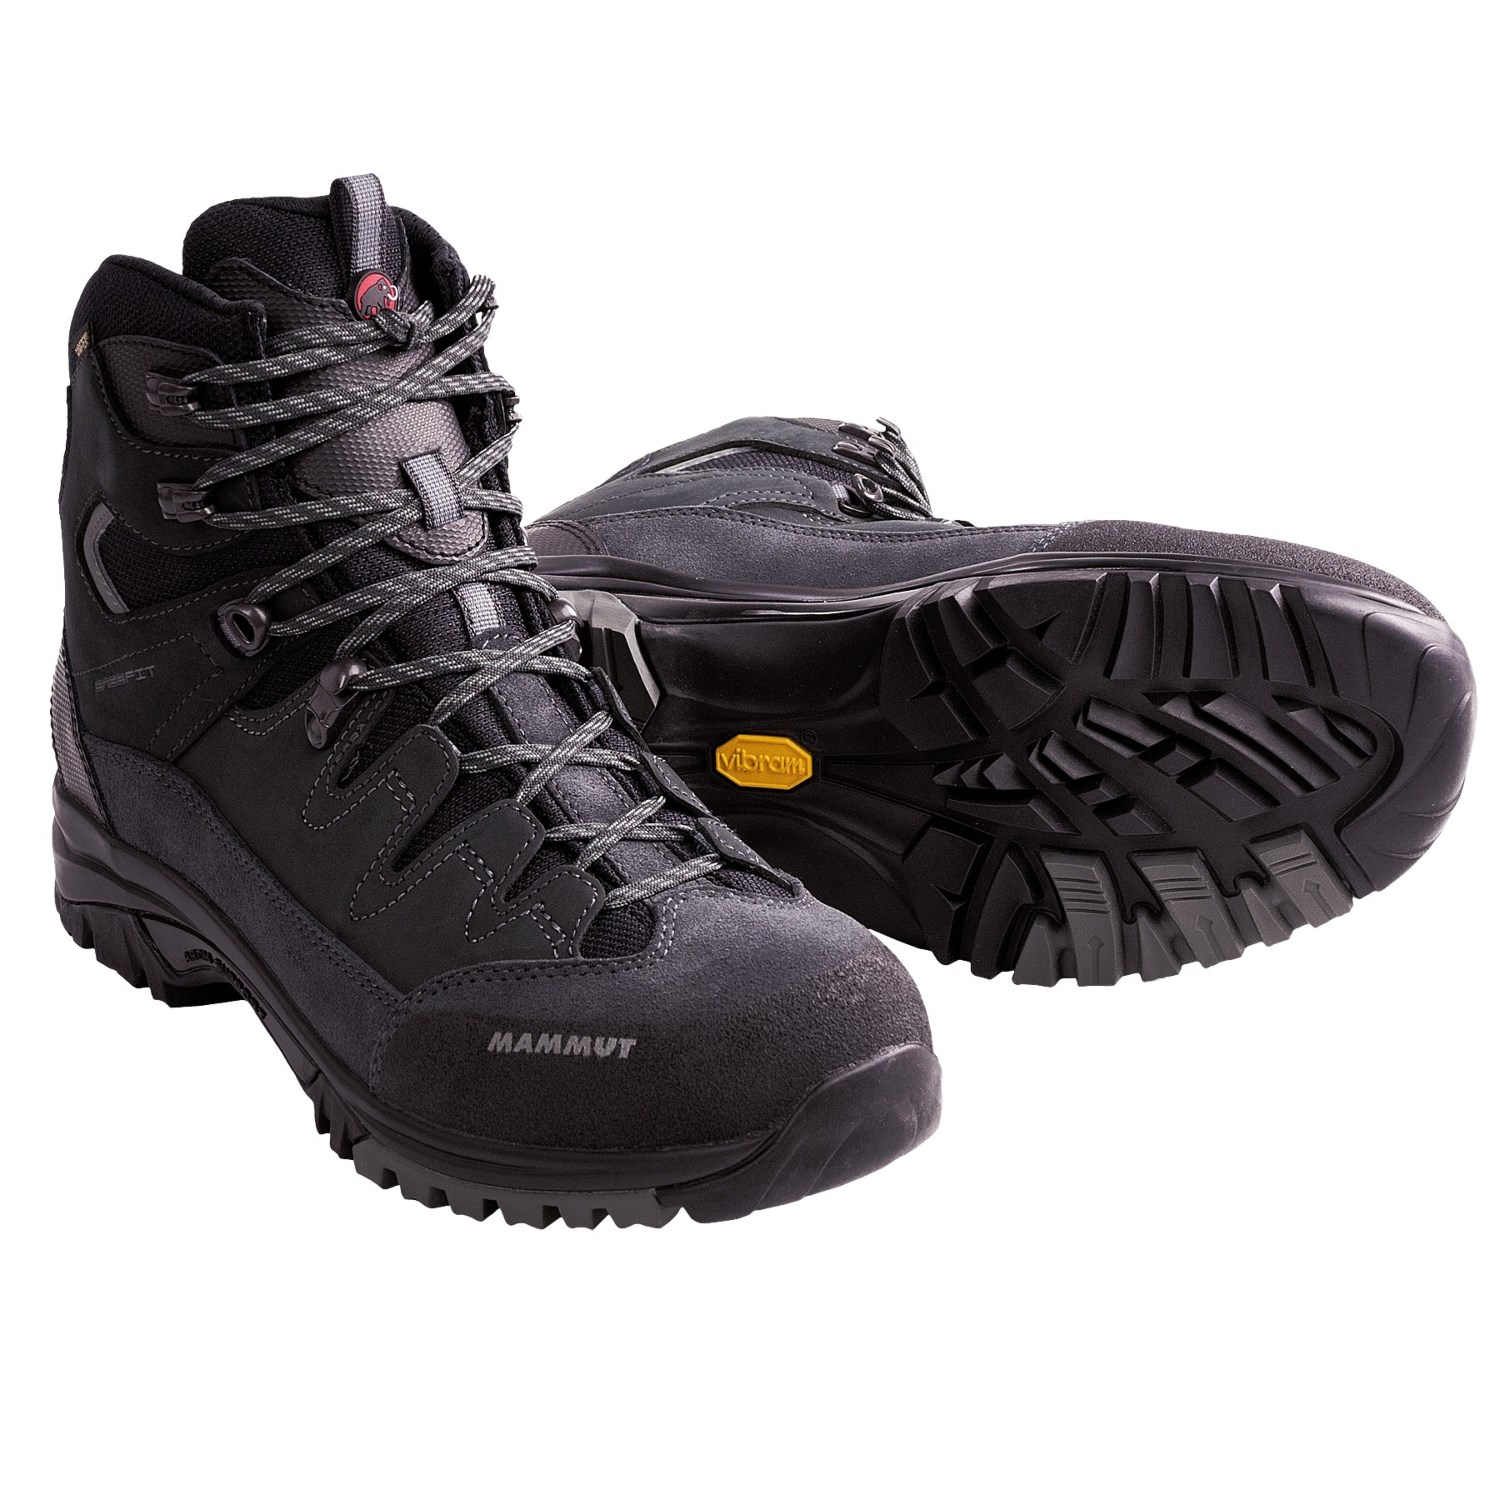 mammut chilkoot gore tex hiking boots for men 6682y. Black Bedroom Furniture Sets. Home Design Ideas